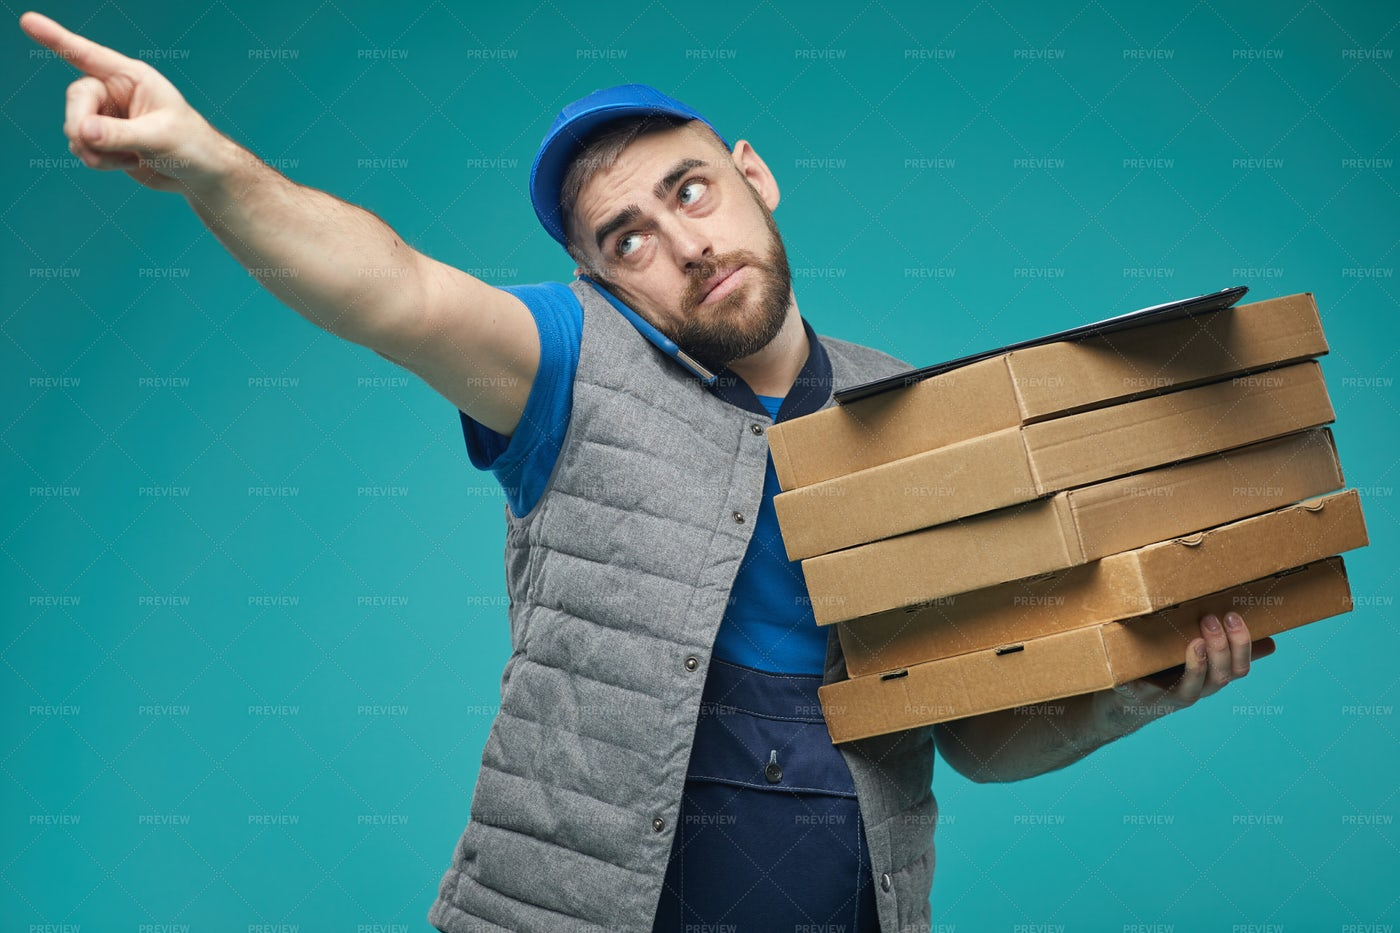 Busy Delivery Man Working: Stock Photos